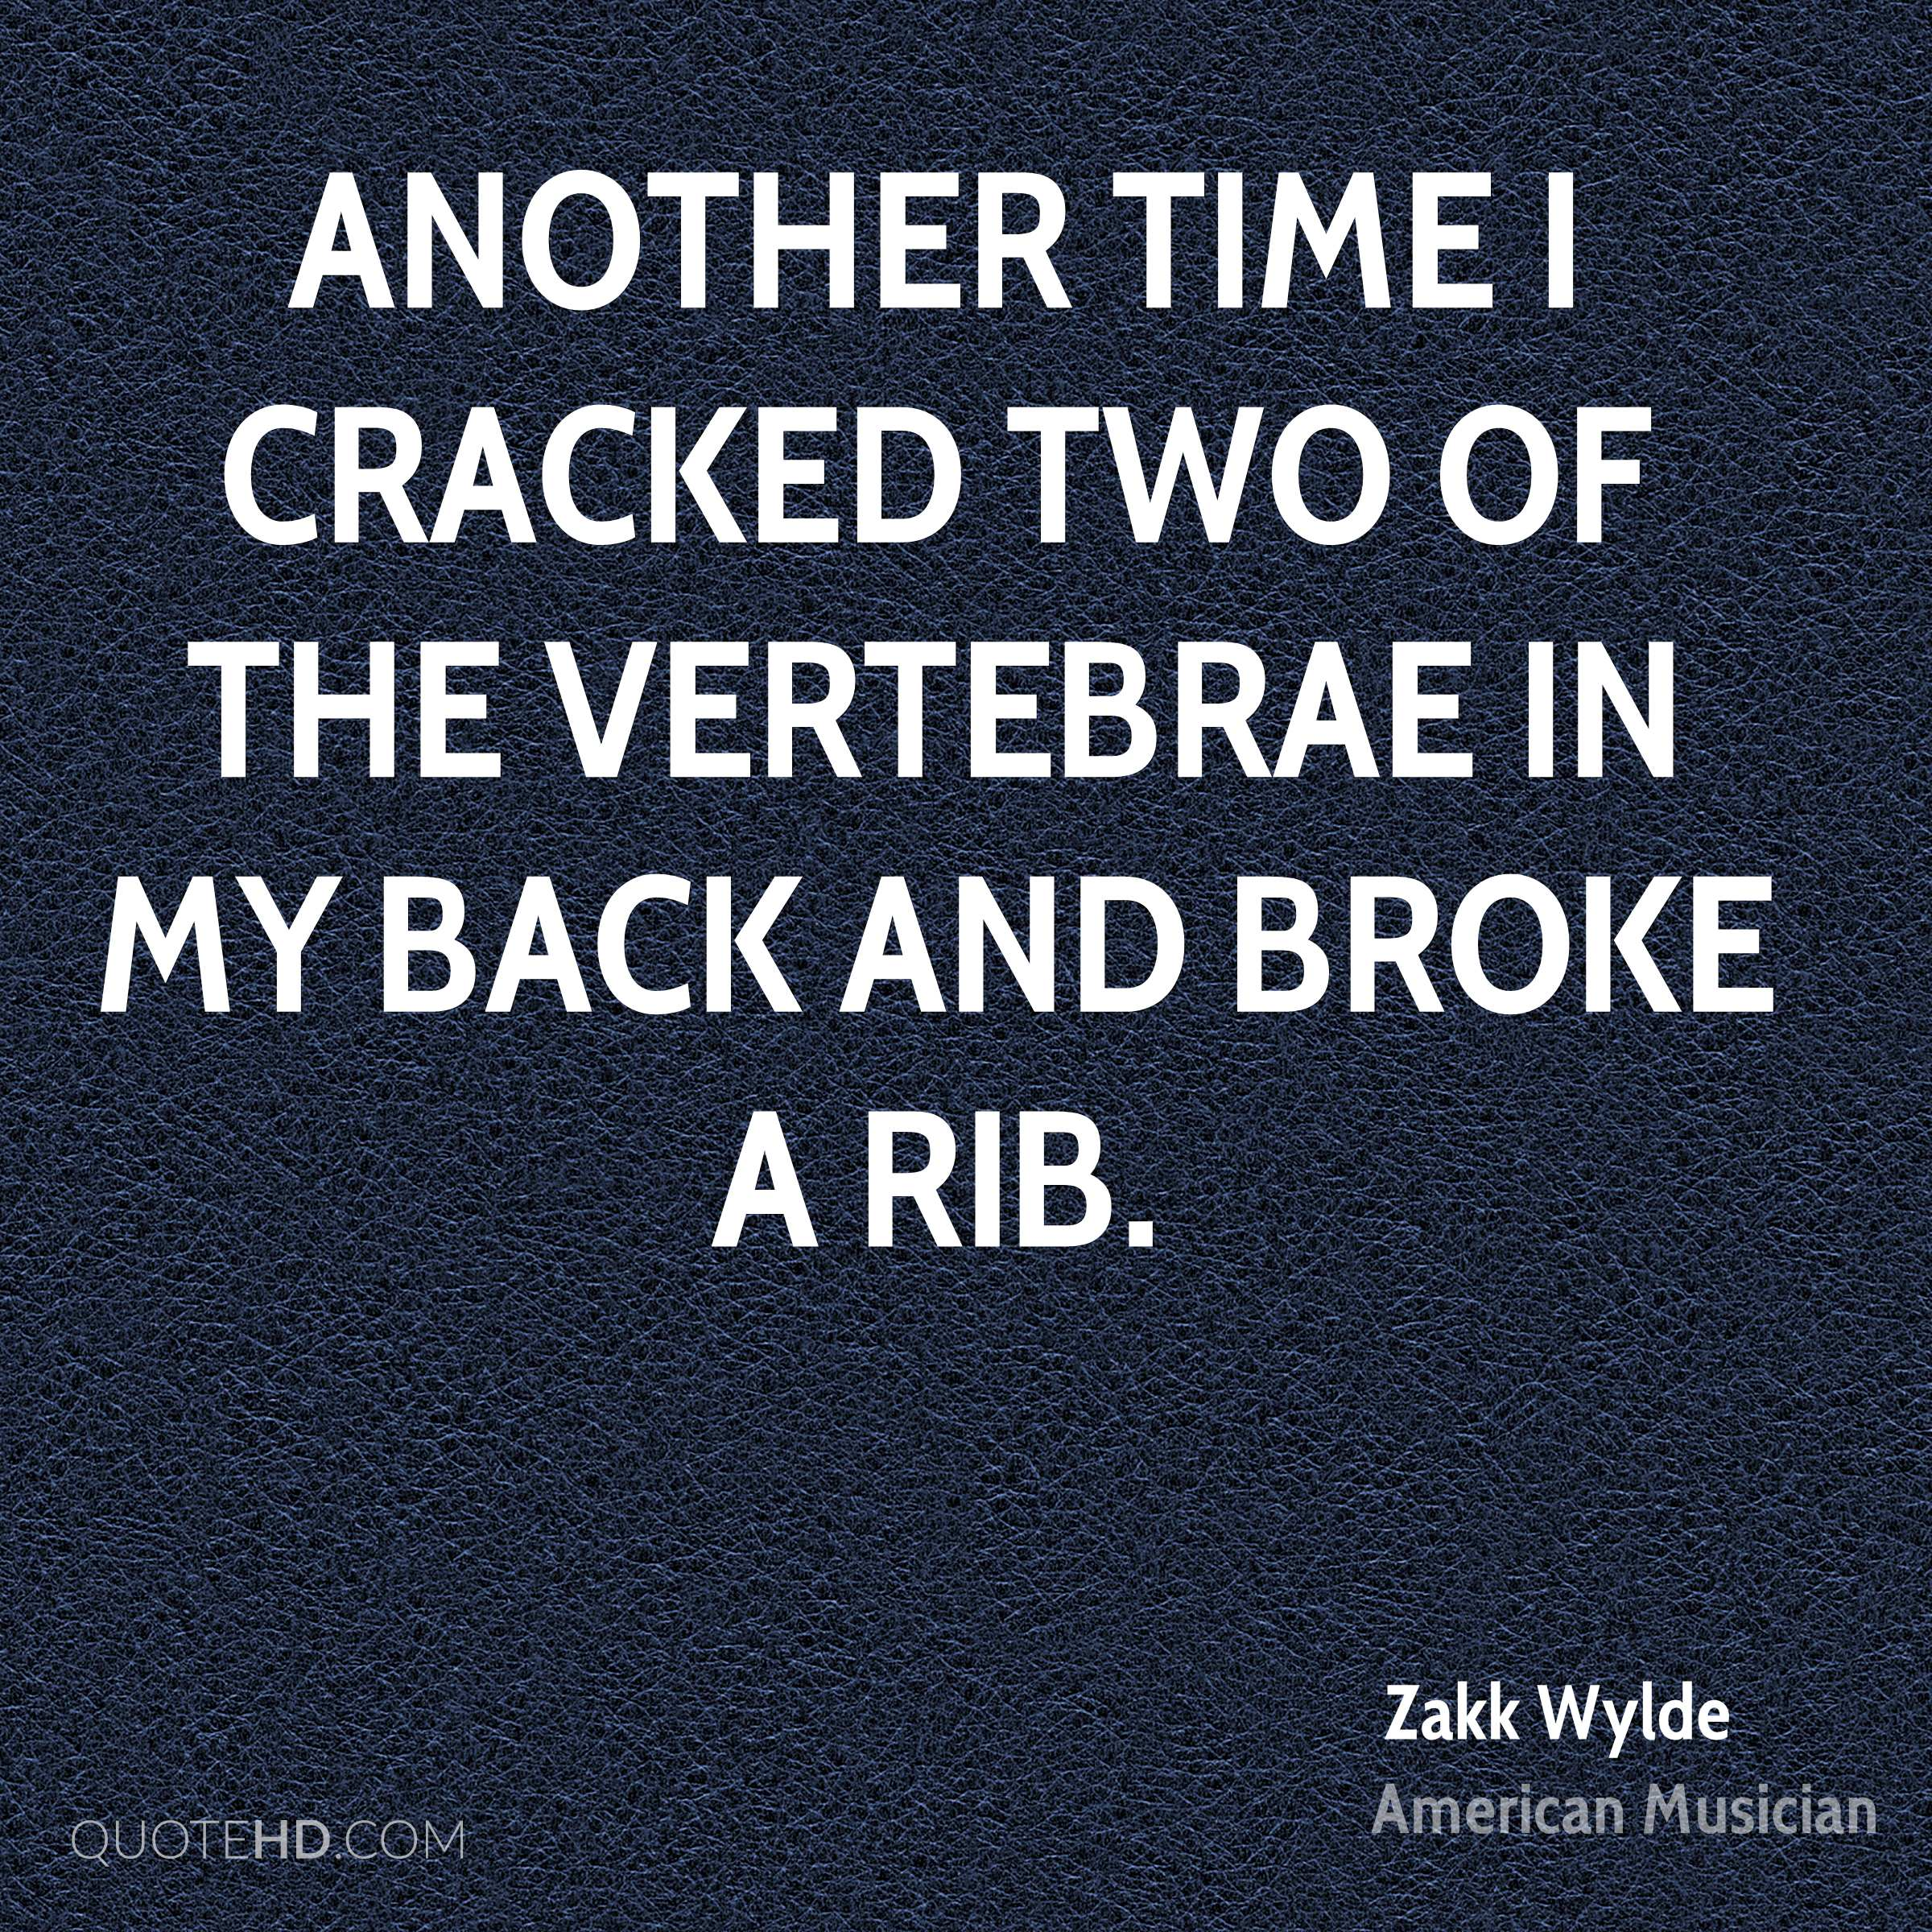 Another time I cracked two of the vertebrae in my back and broke a rib.